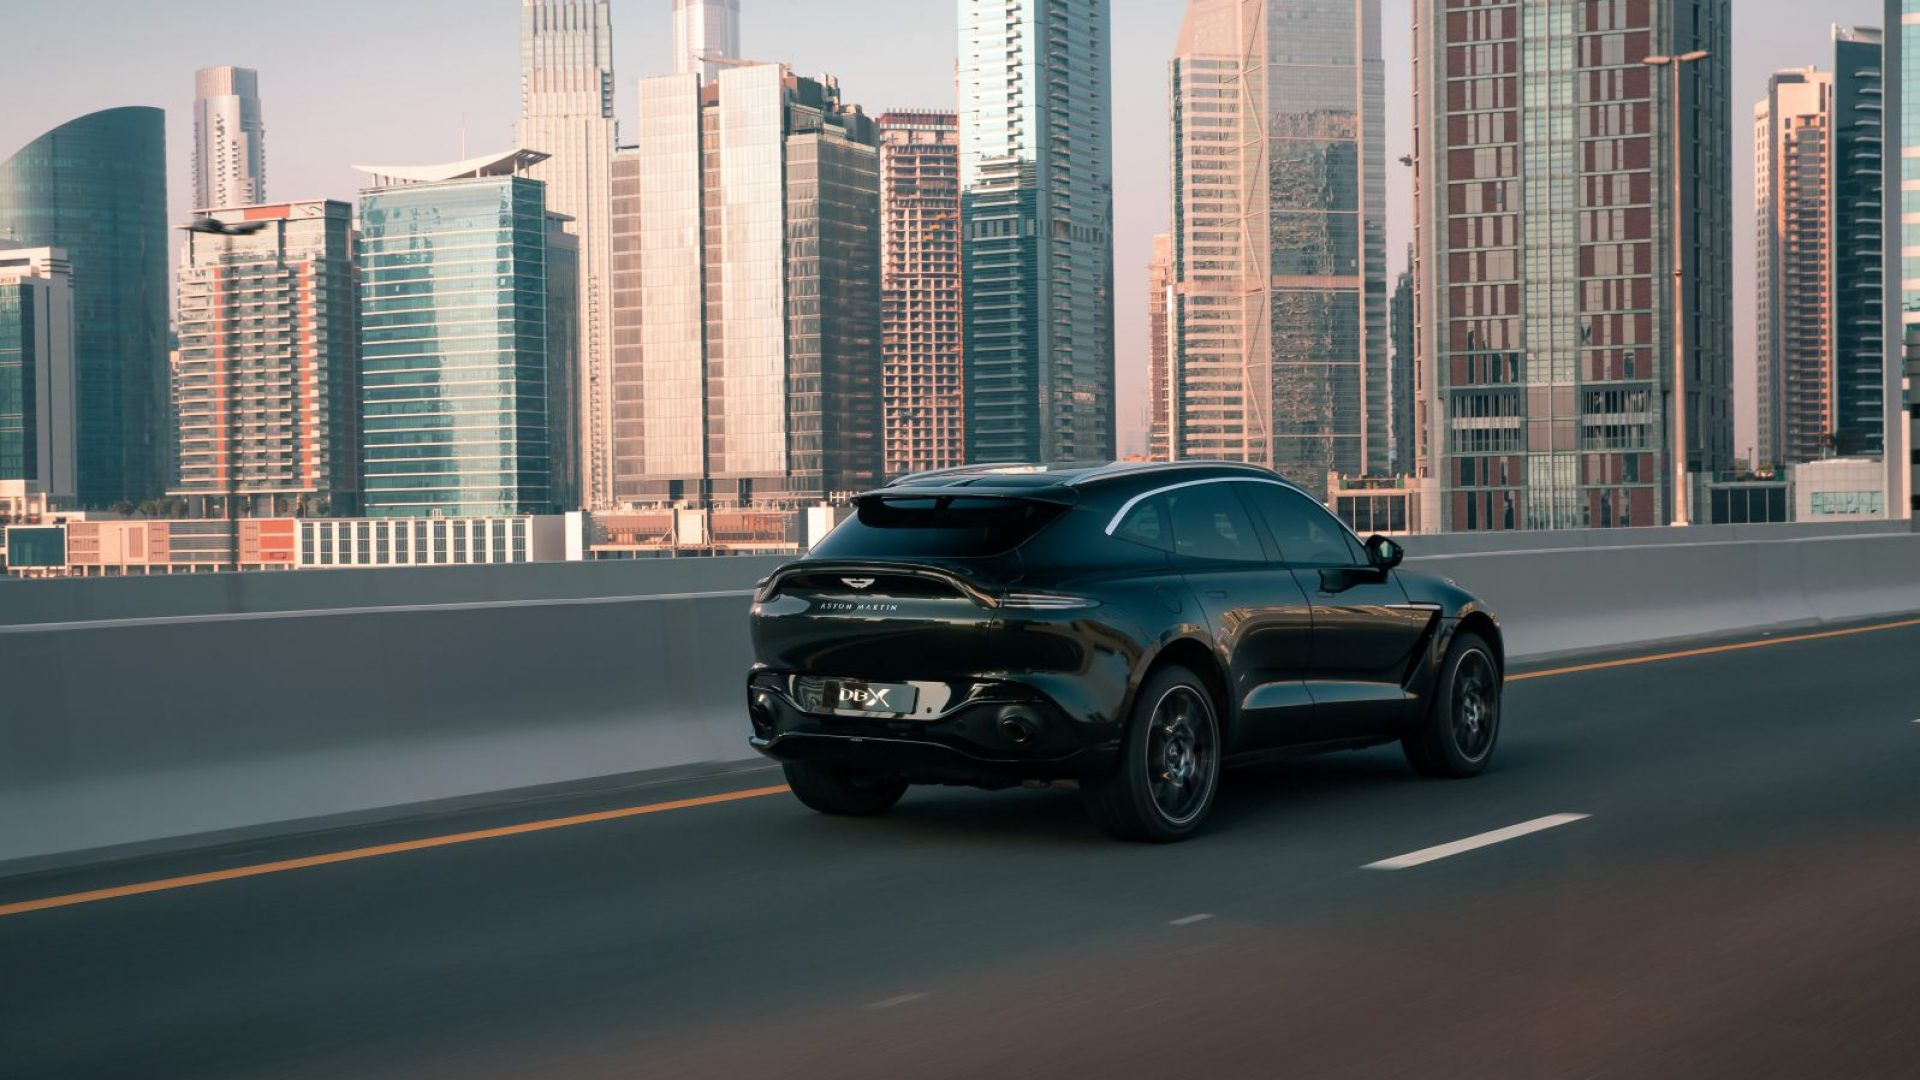 aston-martin-dbx-in-the-middle-east-4-jpg.